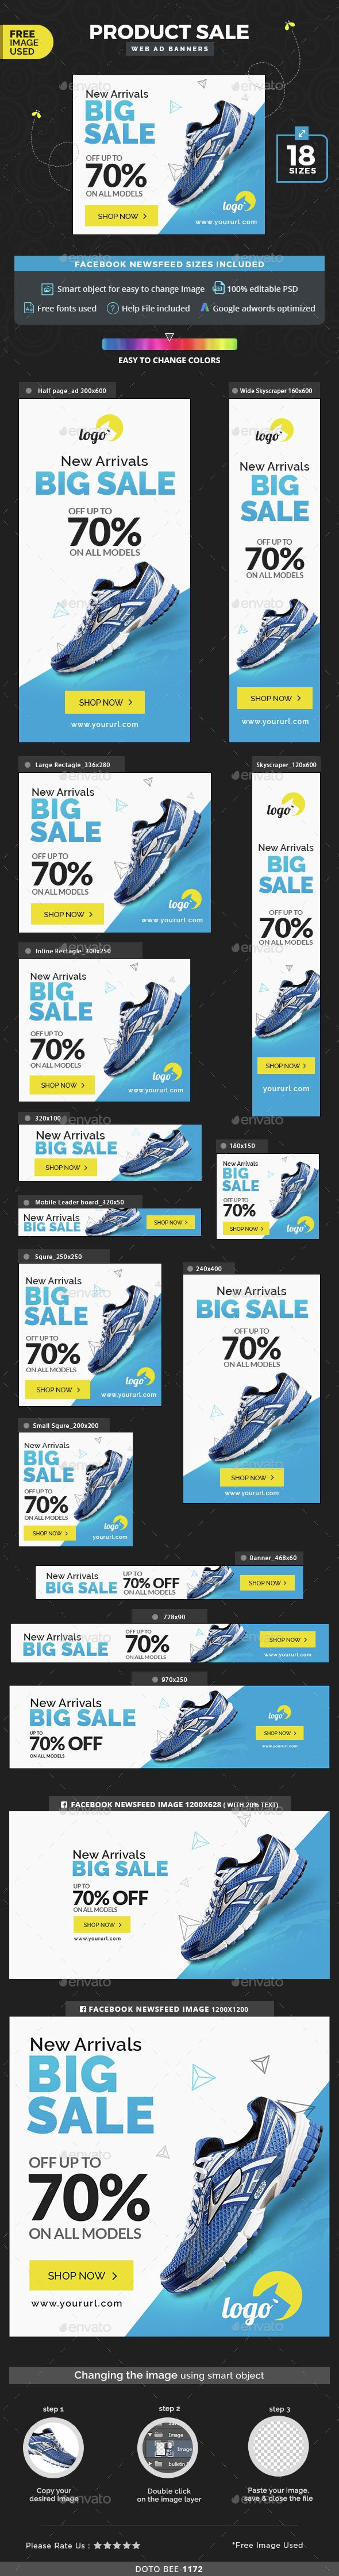 Product Sale Web Banners Template PSD. Download here: http://graphicriver.net/item/product-sale-banners/15175497?ref=ksioks